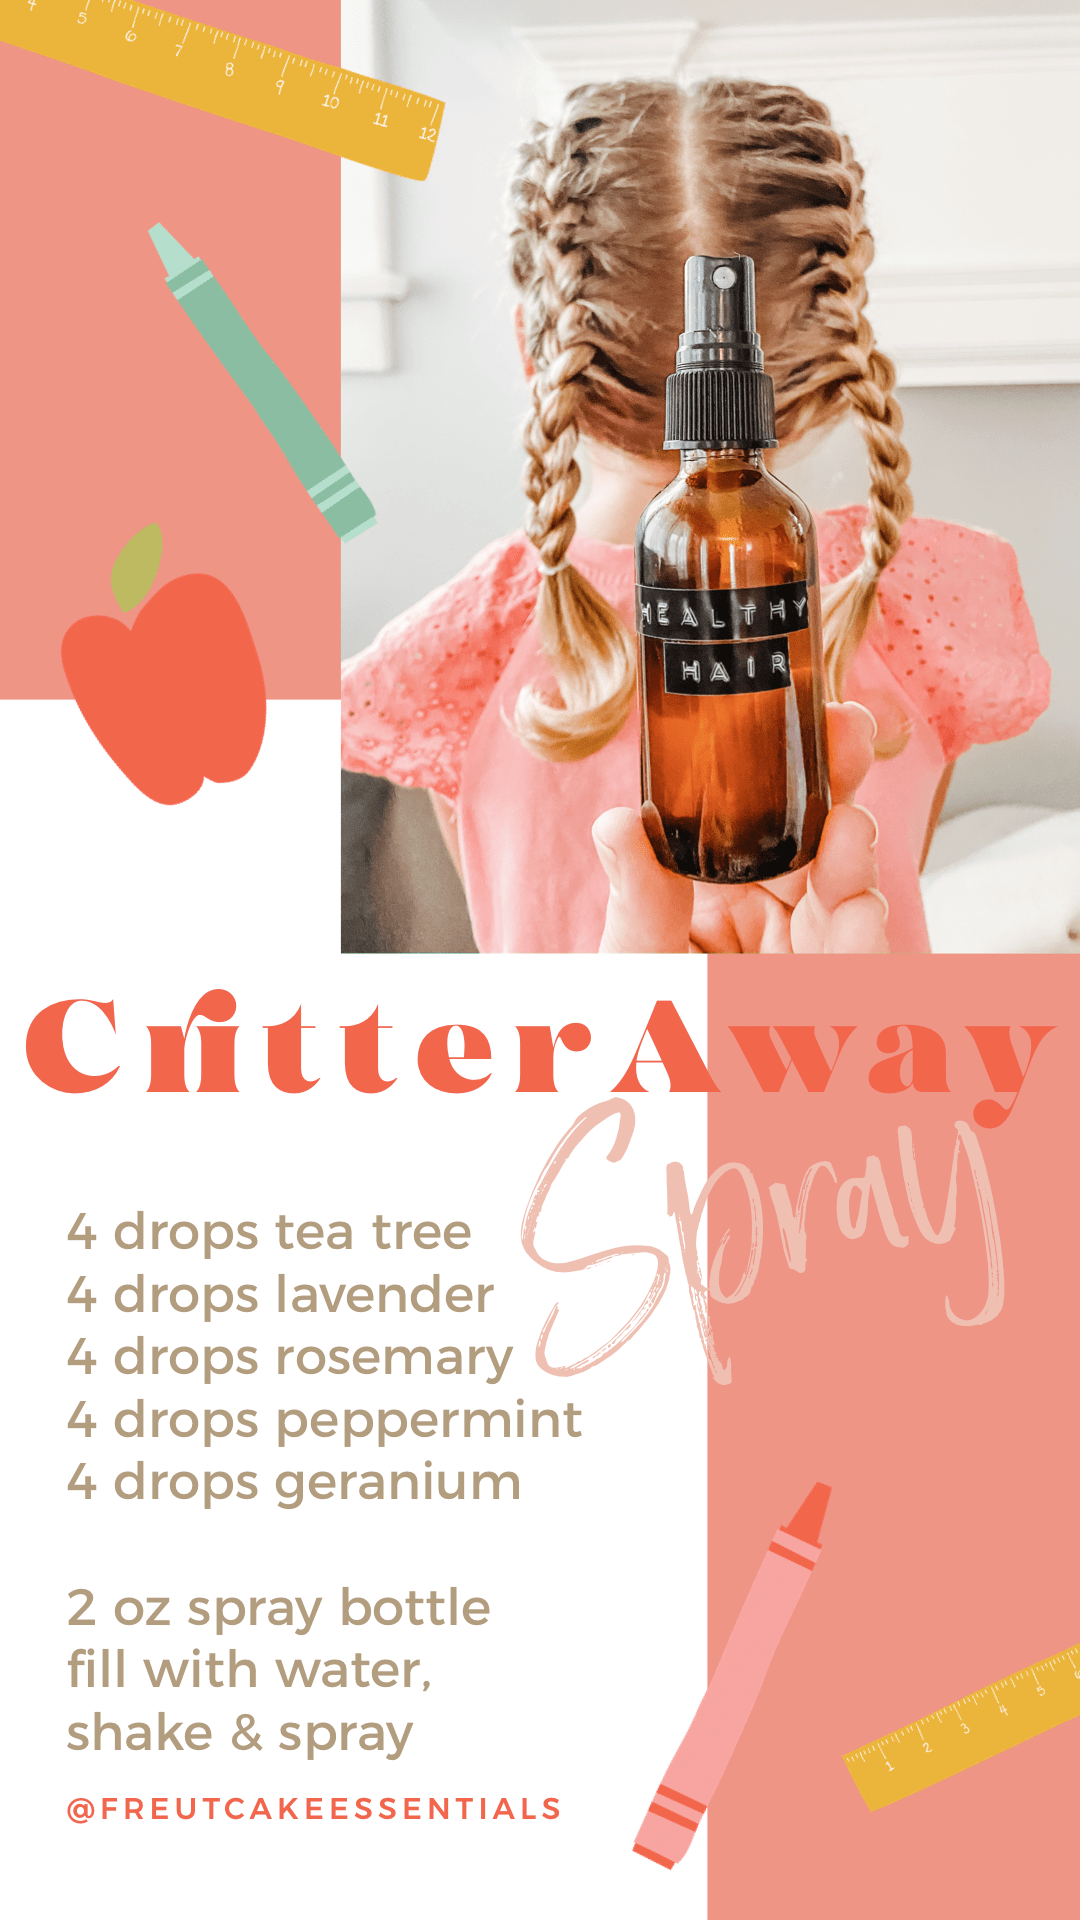 Critter Away Spray using Essential Oils